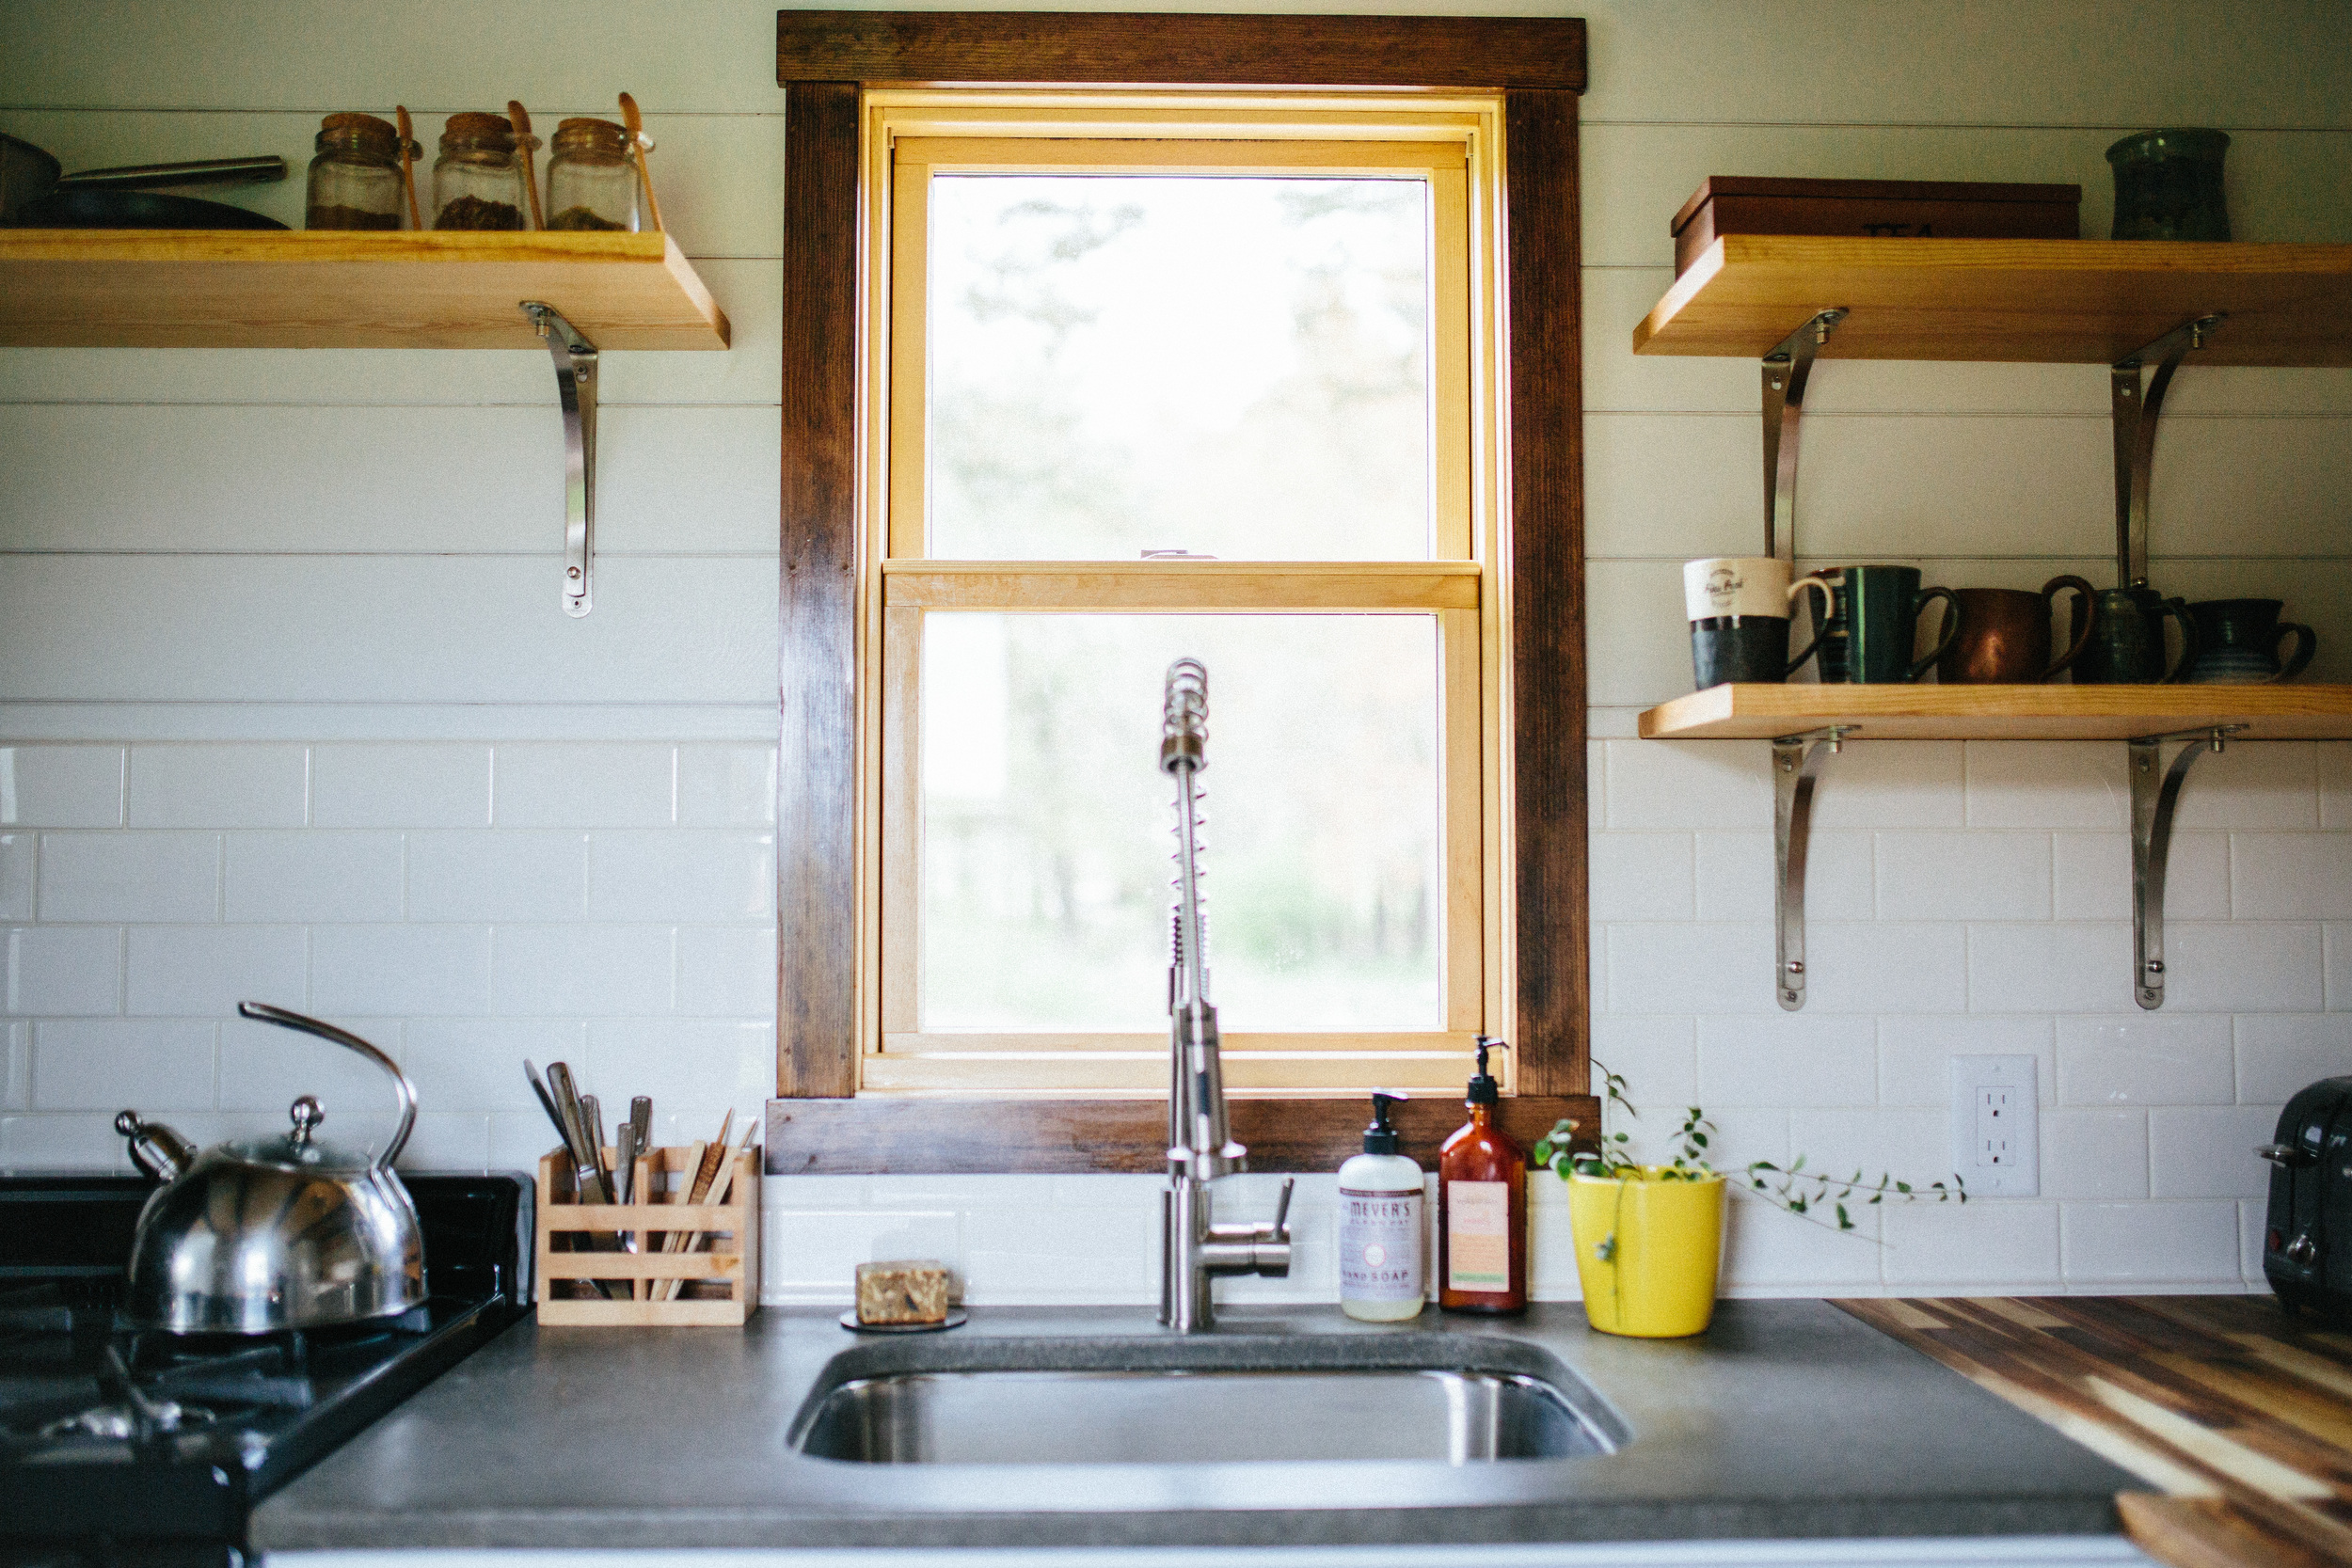 The Chimera by Wind River Tiny Homes. Concrete and butcher block countertops, open shelving, subway tile backsplash.